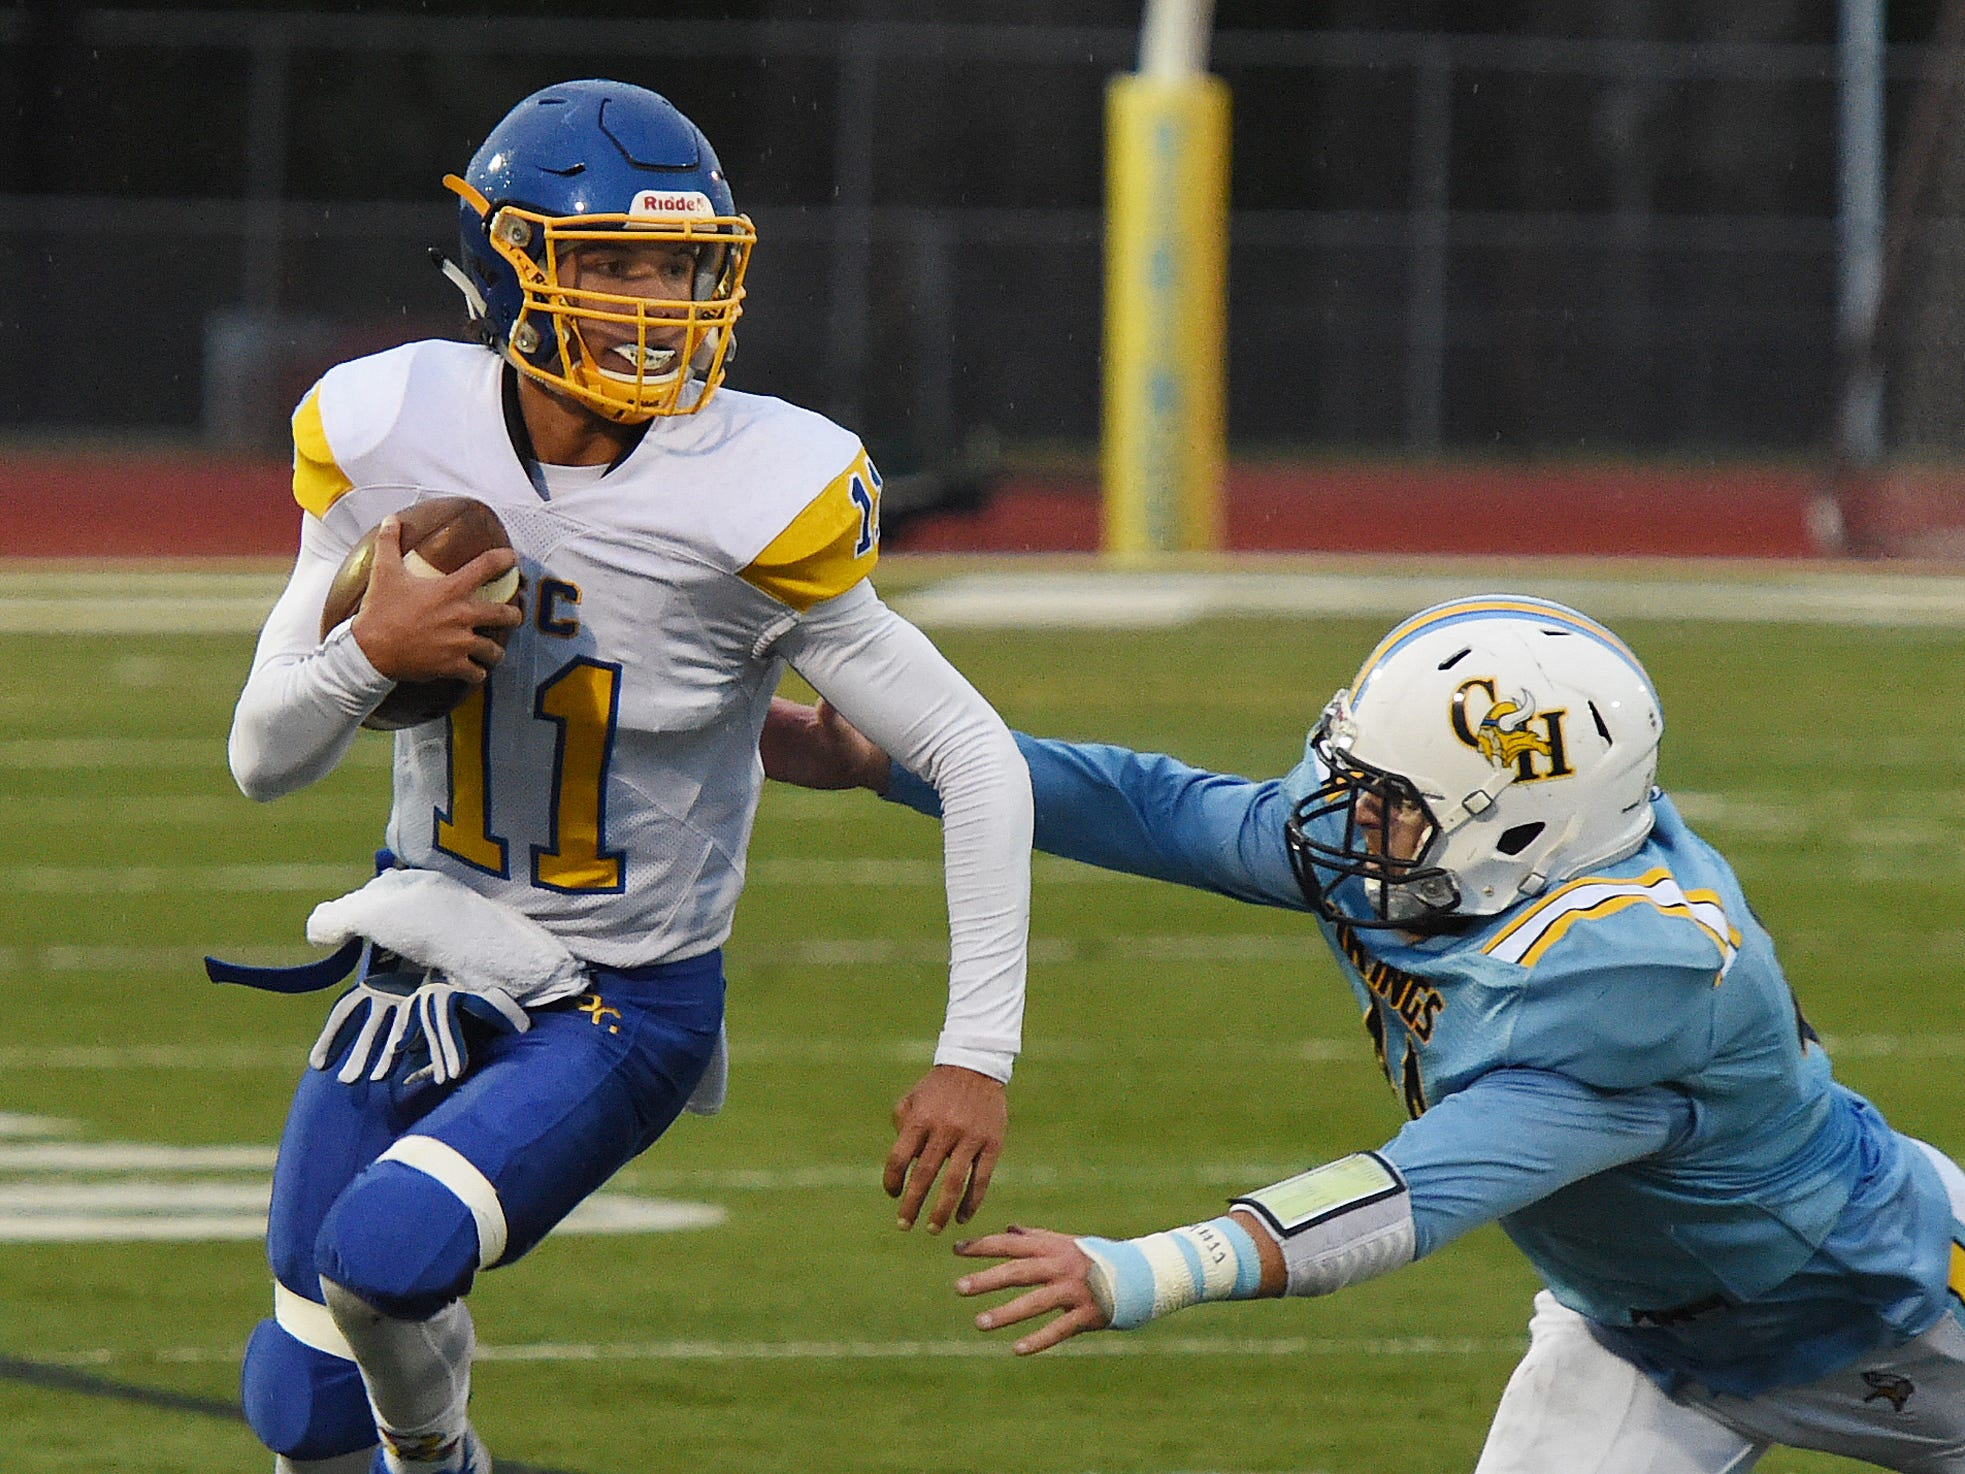 Sussex Central's QB  Isaac Barnes runs for some yardage from Cape's  William Ott during their game Oct. 26, 2018 in Lewes.